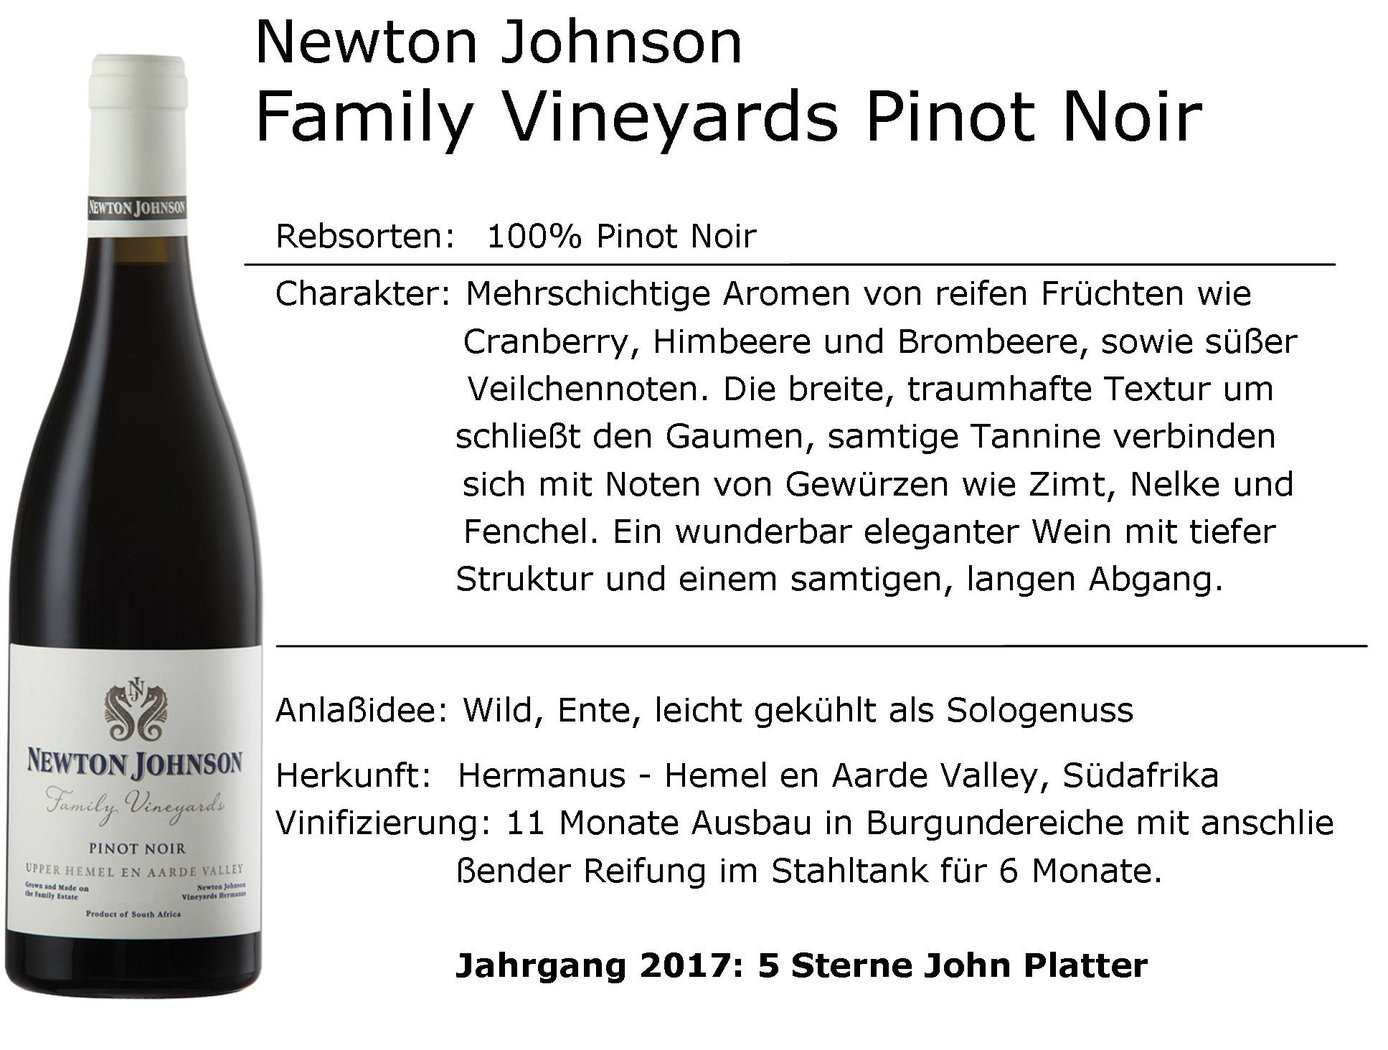 Newton Johnson Family Vineyards Pinot Noir 2018